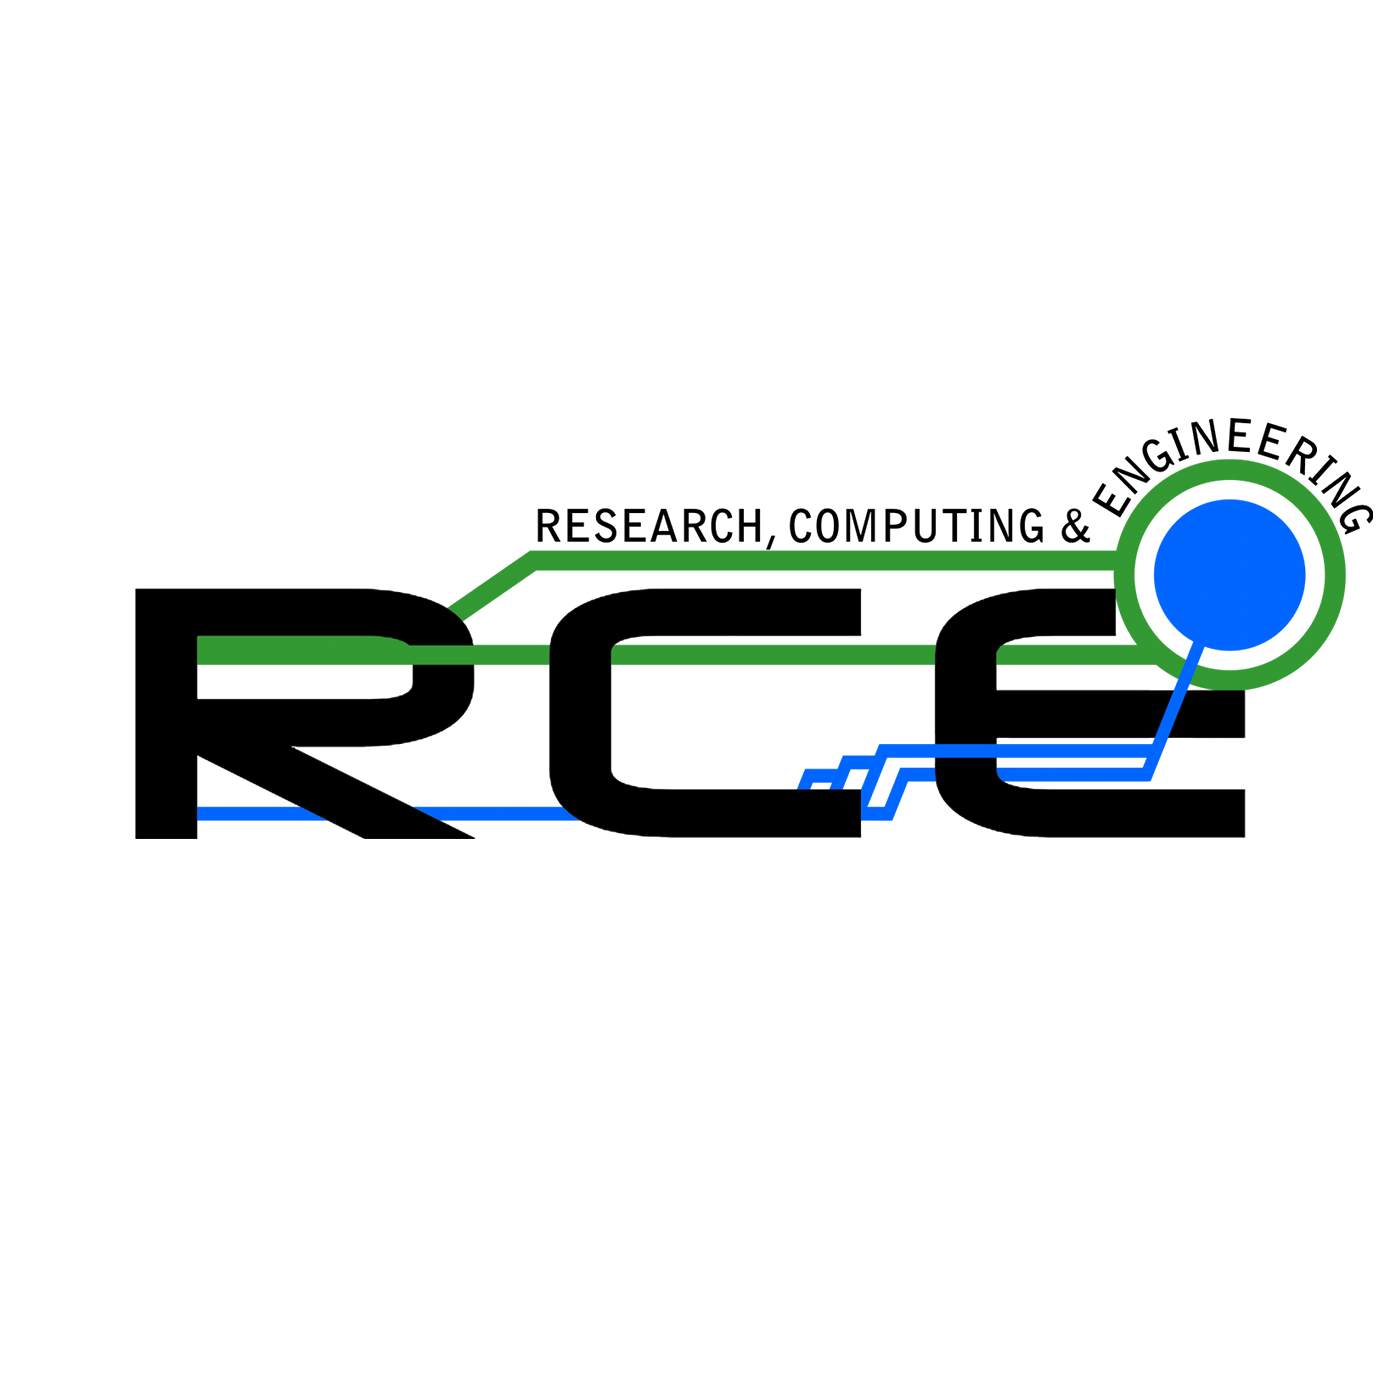 RCE - Super Computers